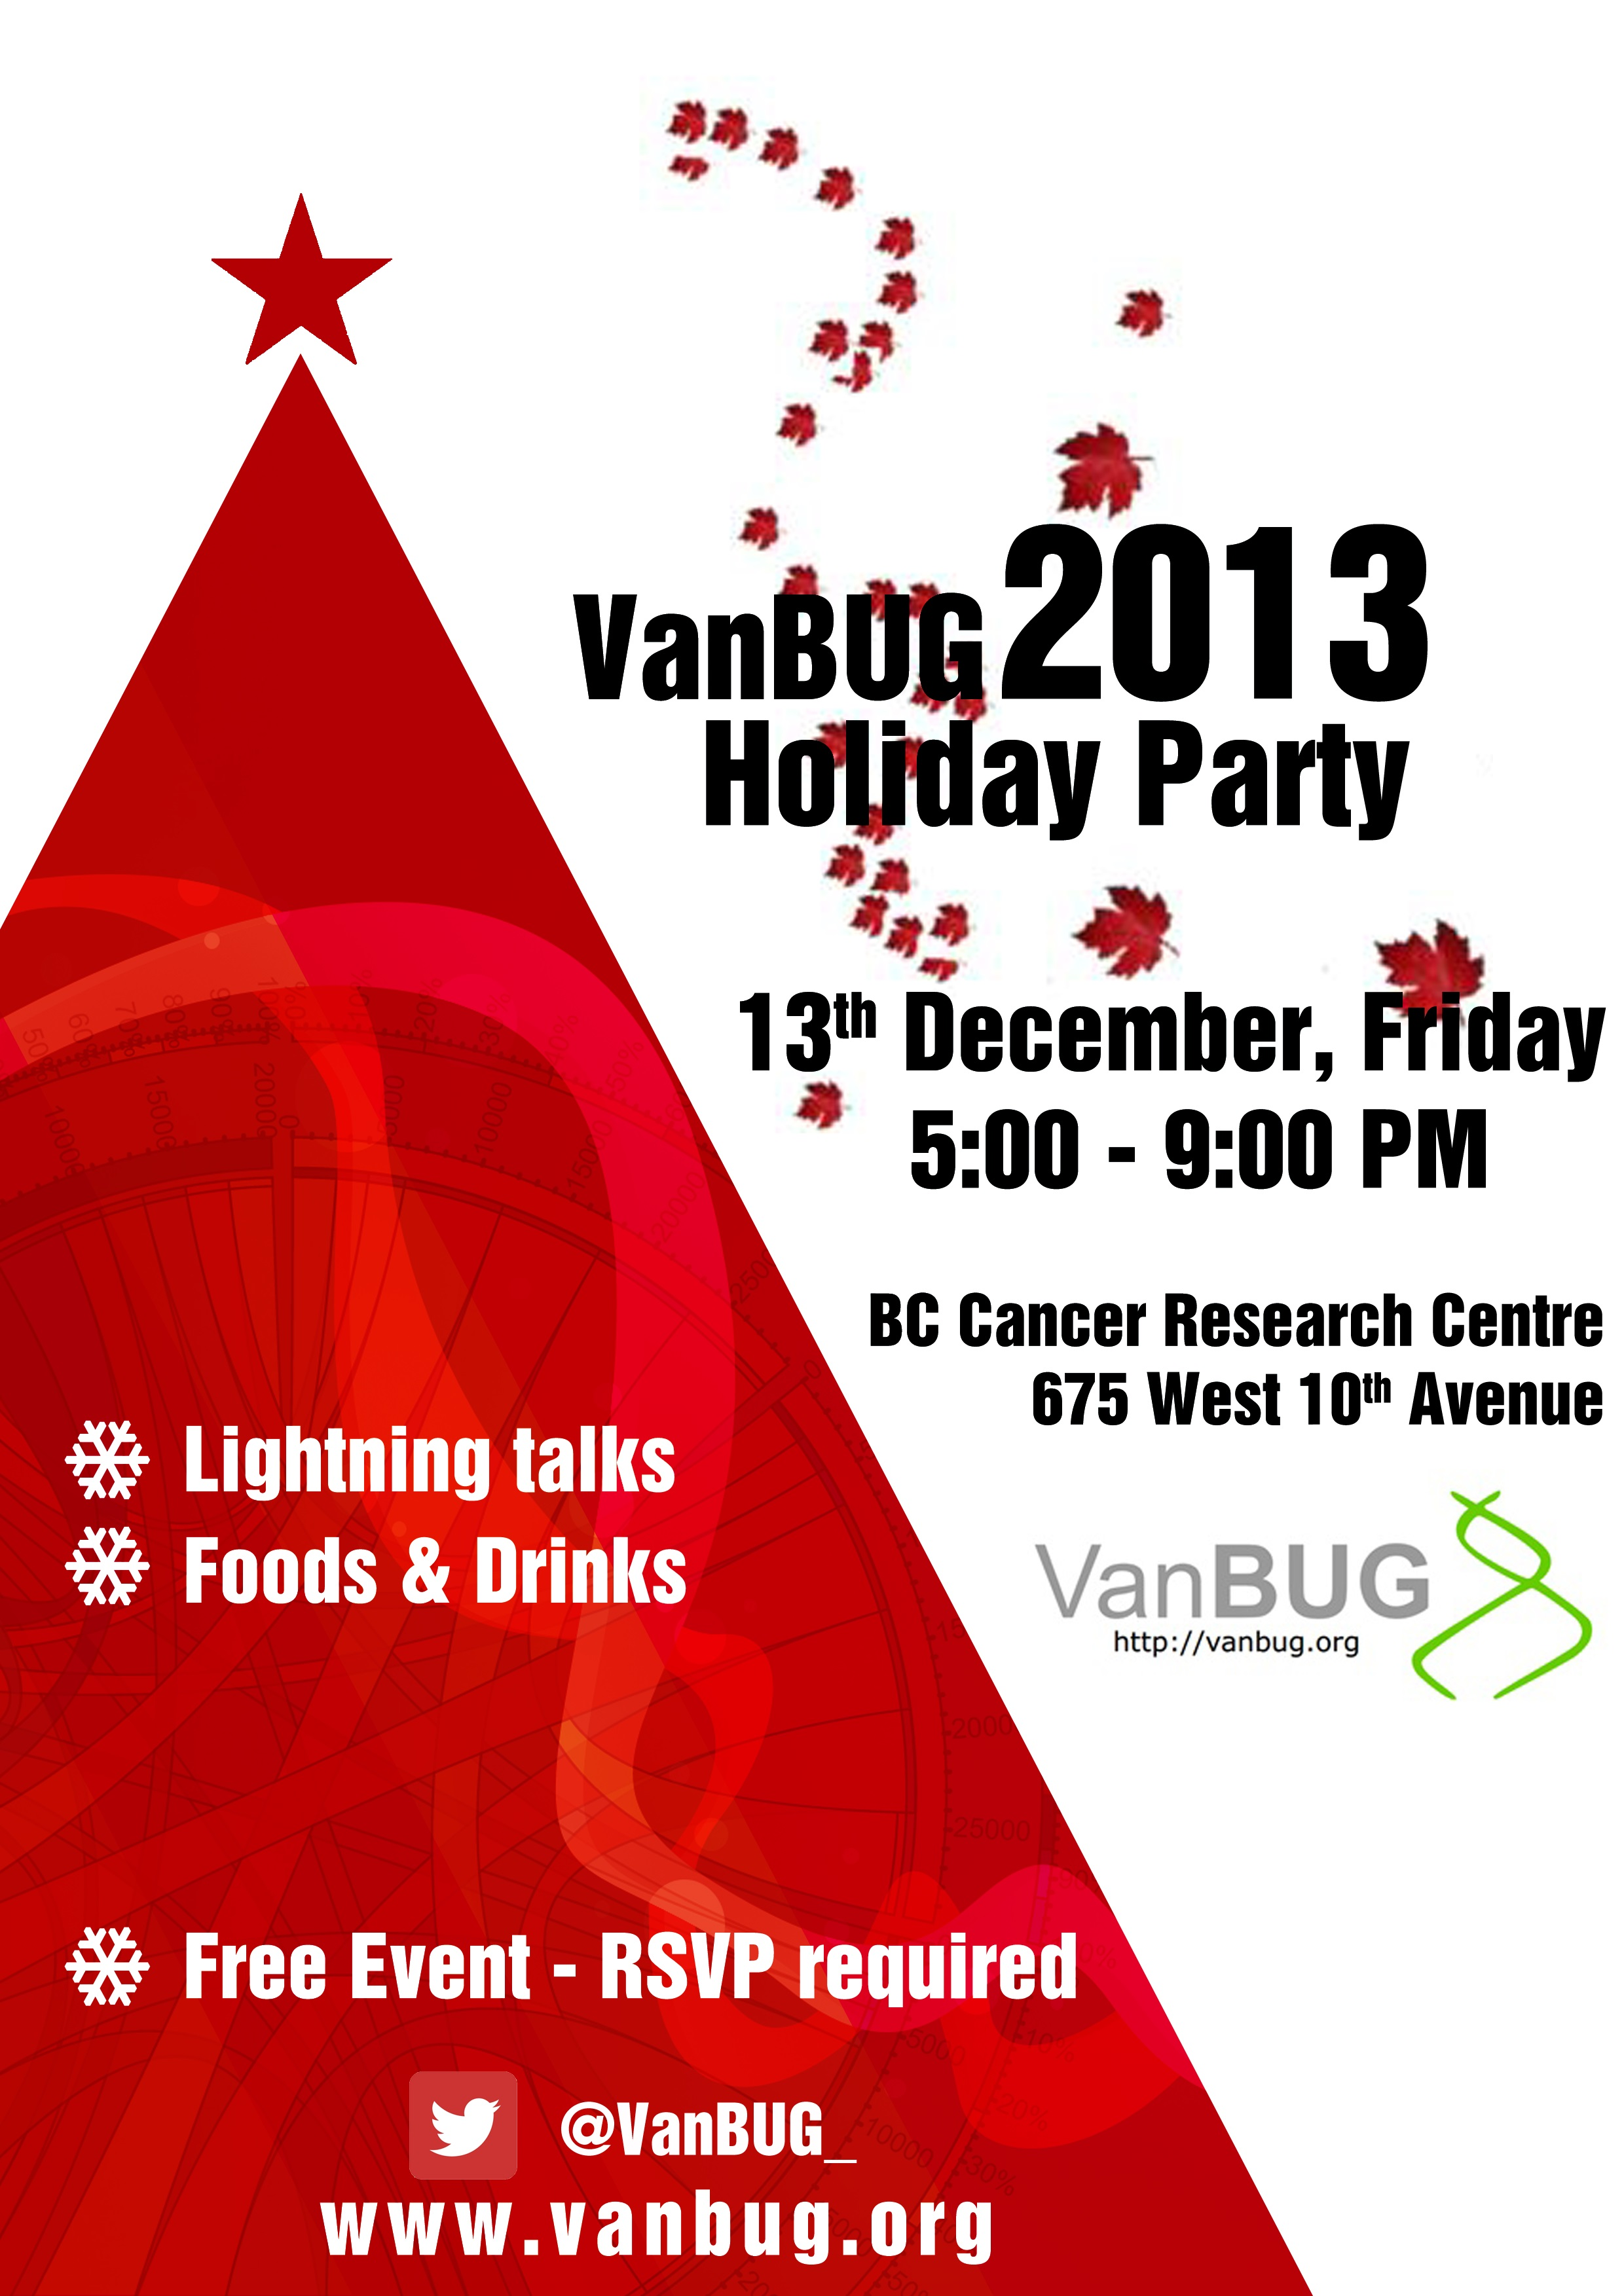 vanbug_2013_holiday_party